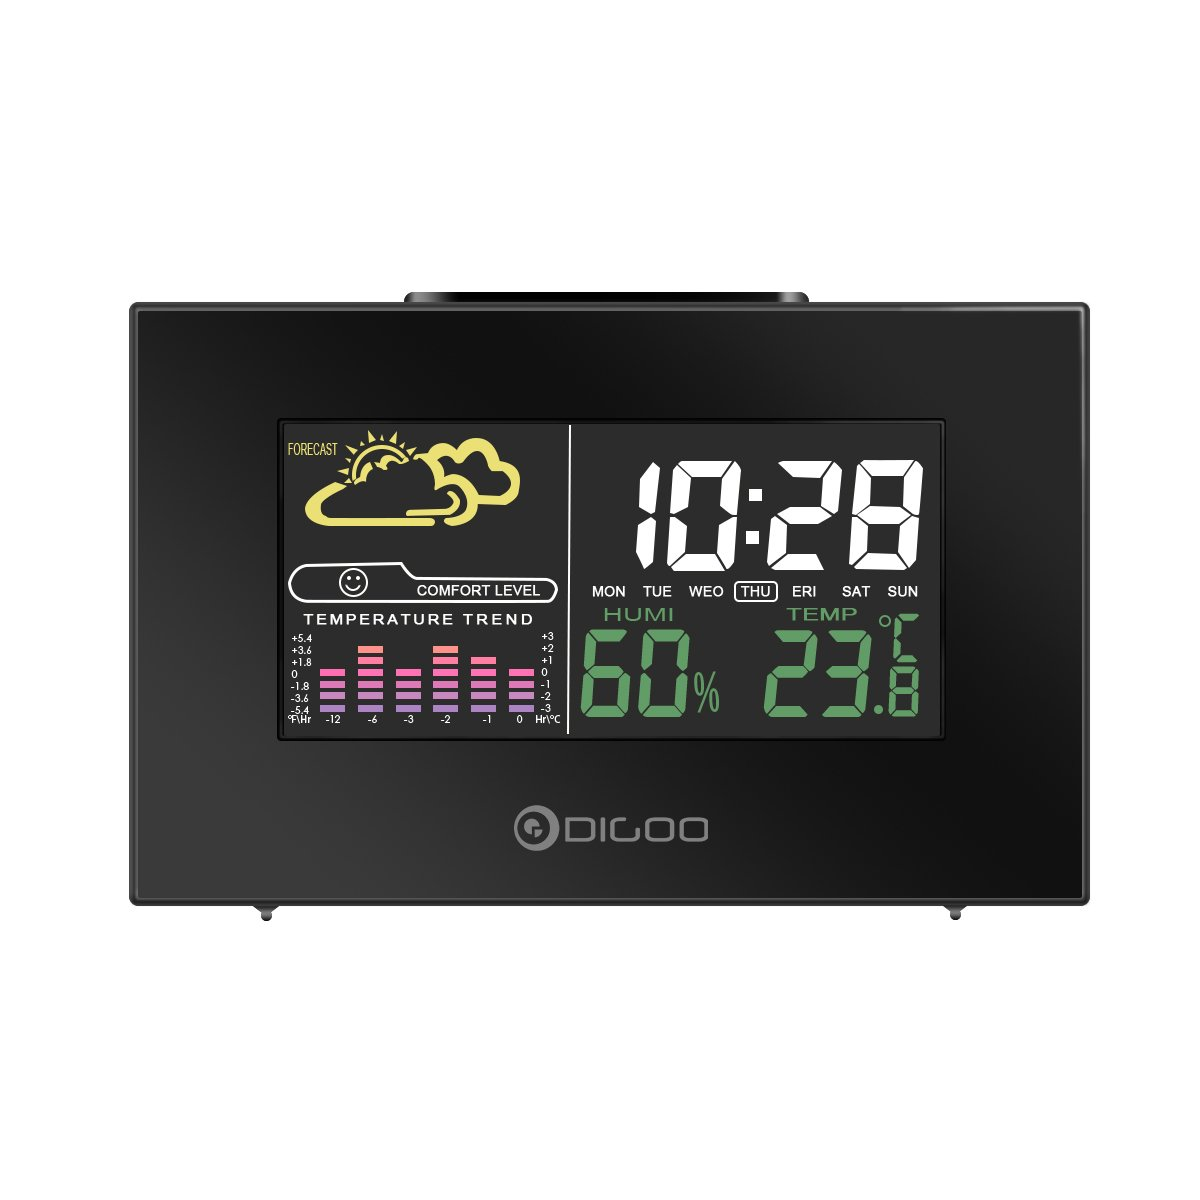 DIGOO DG-C3 Wireless USB Hygrometer Thermometer Alarm Clock, Weather Forecast Station with Color Backlit, LCD Screen, Temperature&Humidity Display DIGOOWuulihui146